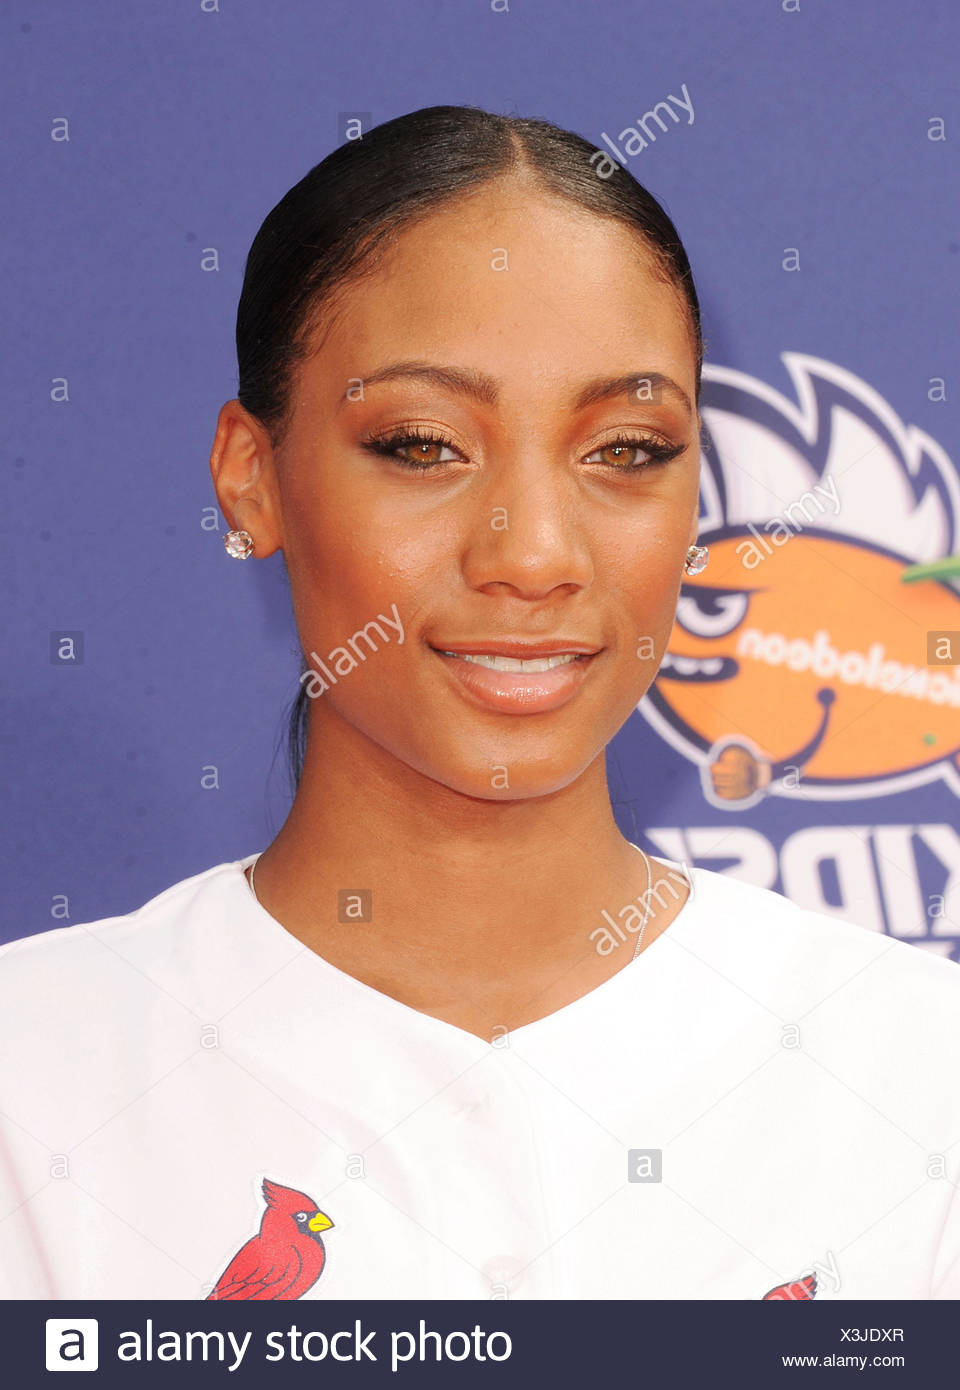 Joueur de baseball Mo'ne Davis arrive au Nickelodeon Kids' Choice Awards 2015 Sport à l'UCLA's Pauley Pavilion le 16 juillet 2015 à Westwood, Californie., Additional-Rights-Jeux-NA Photo Stock